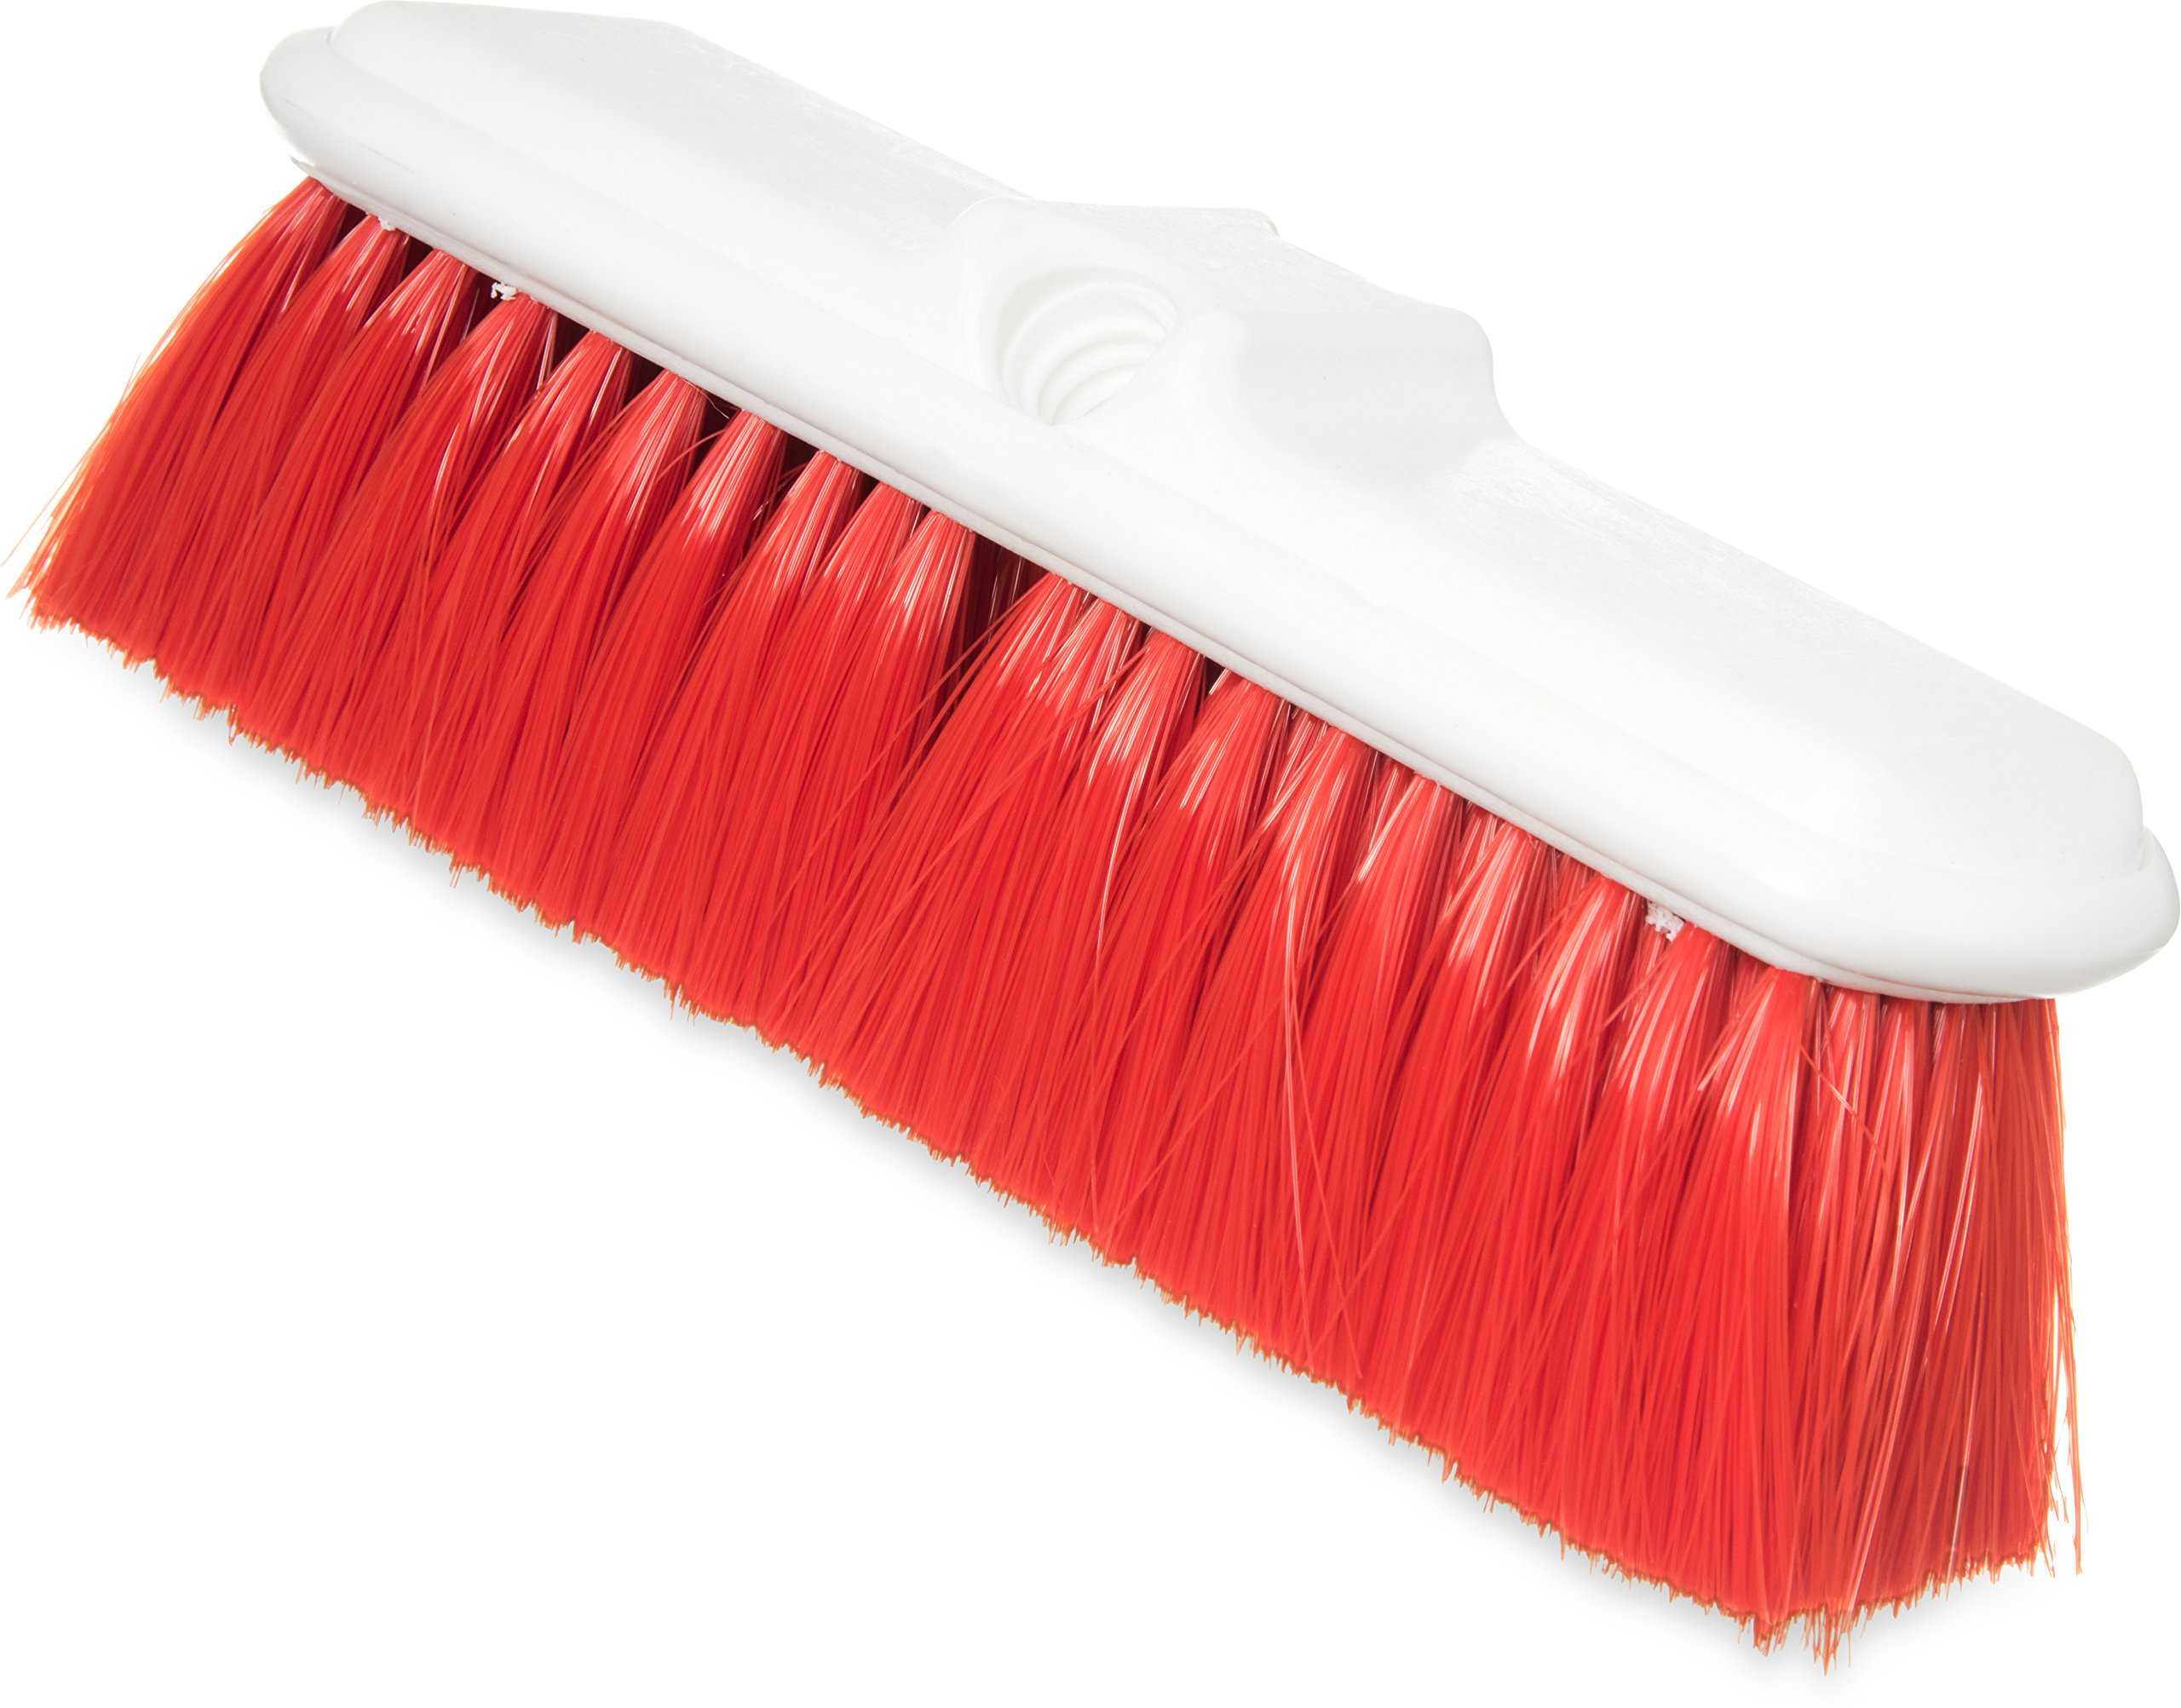 Carlisle 4005005 Plastic Block Flo-Thru Brush, Flagged Nylex Bristles, 9-1/2'' Overall Length x 3'' Width, 2-1/2'' Bristle Trim, Red (Case of 12)